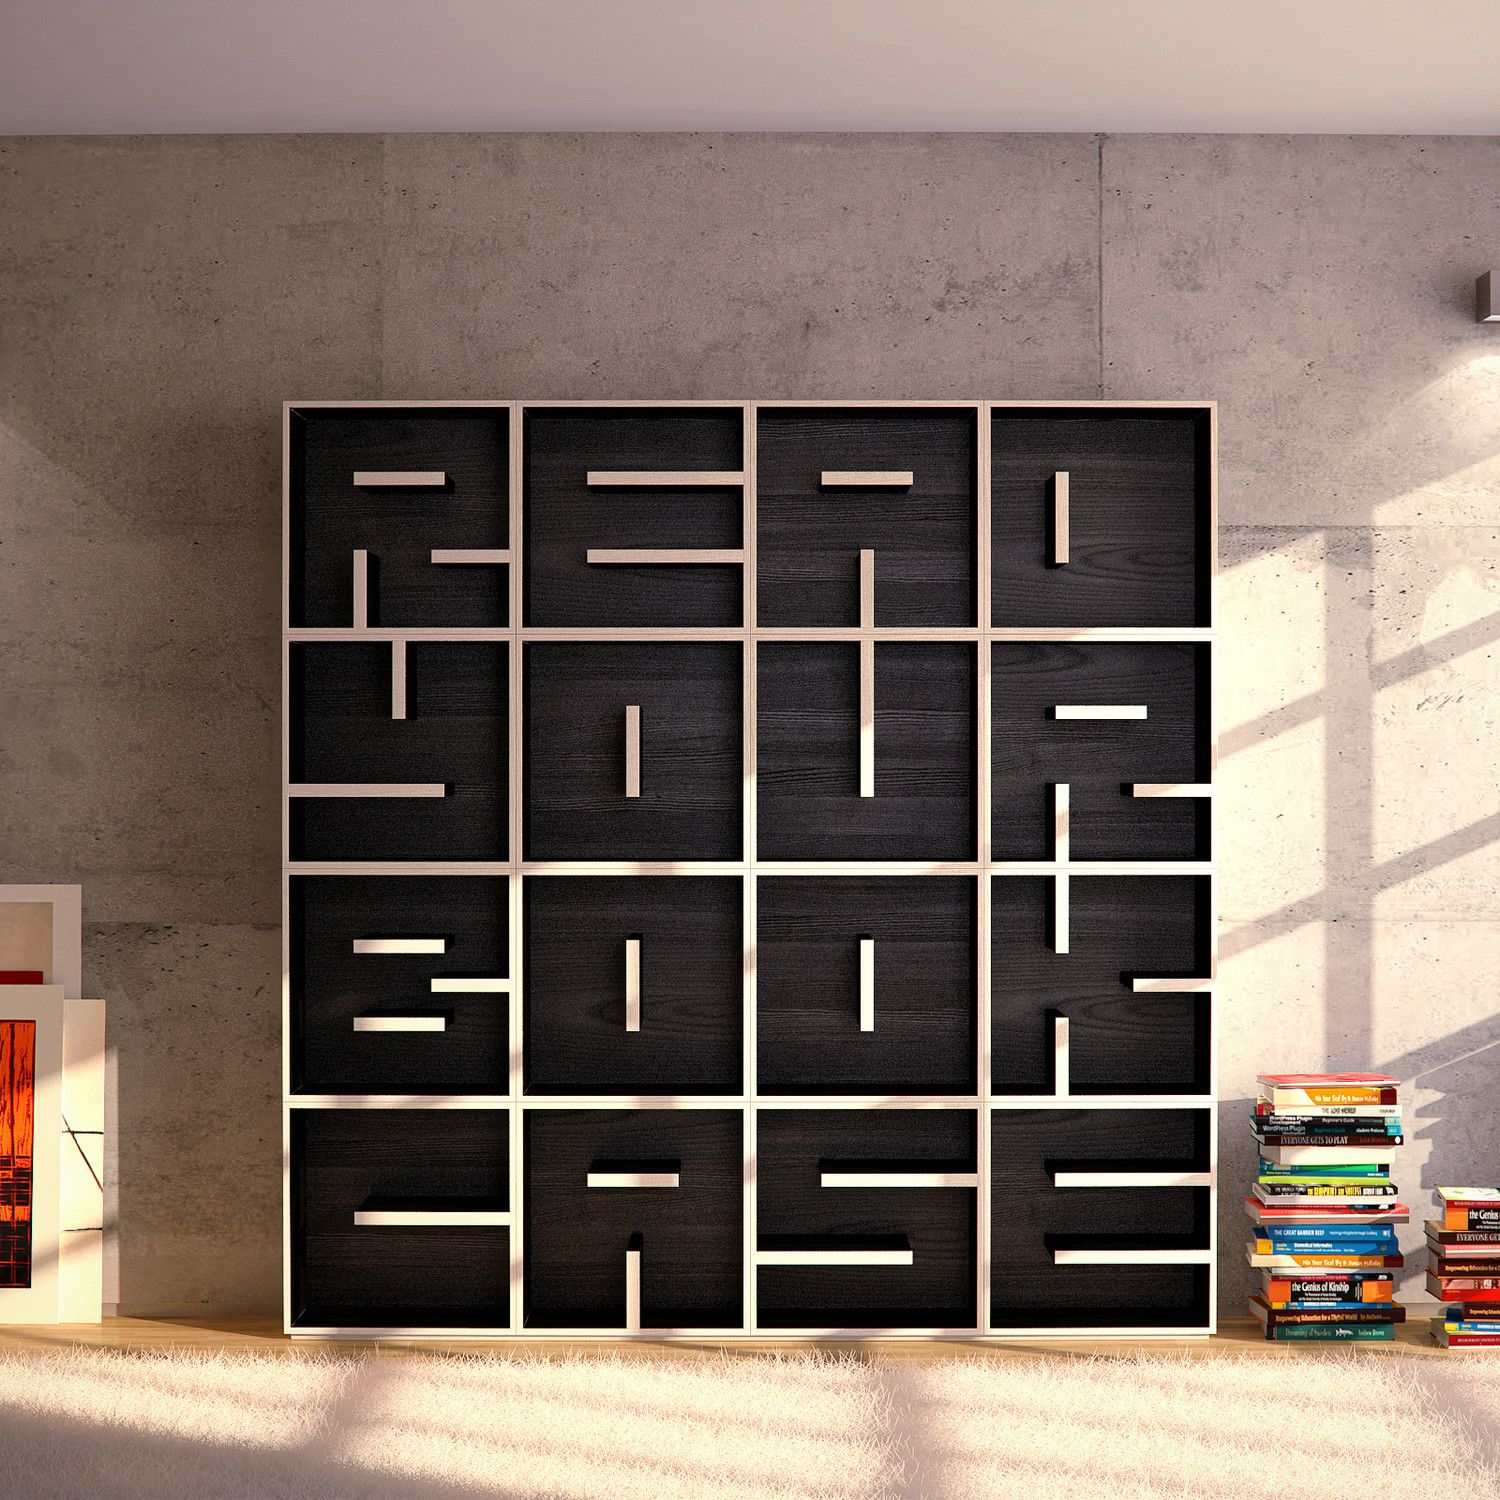 "Italian furniture and interior design company, Saporiti has come up with a clever and unique concept for this wooden bookshelf. By playing around with the placement of the shelves within each box, they were able to visibly form the phrase ""READ YOUR BOOKCASE."" Each individual shelf contains a different letter and can be stacked to form a complete word or stand freely on its own. 